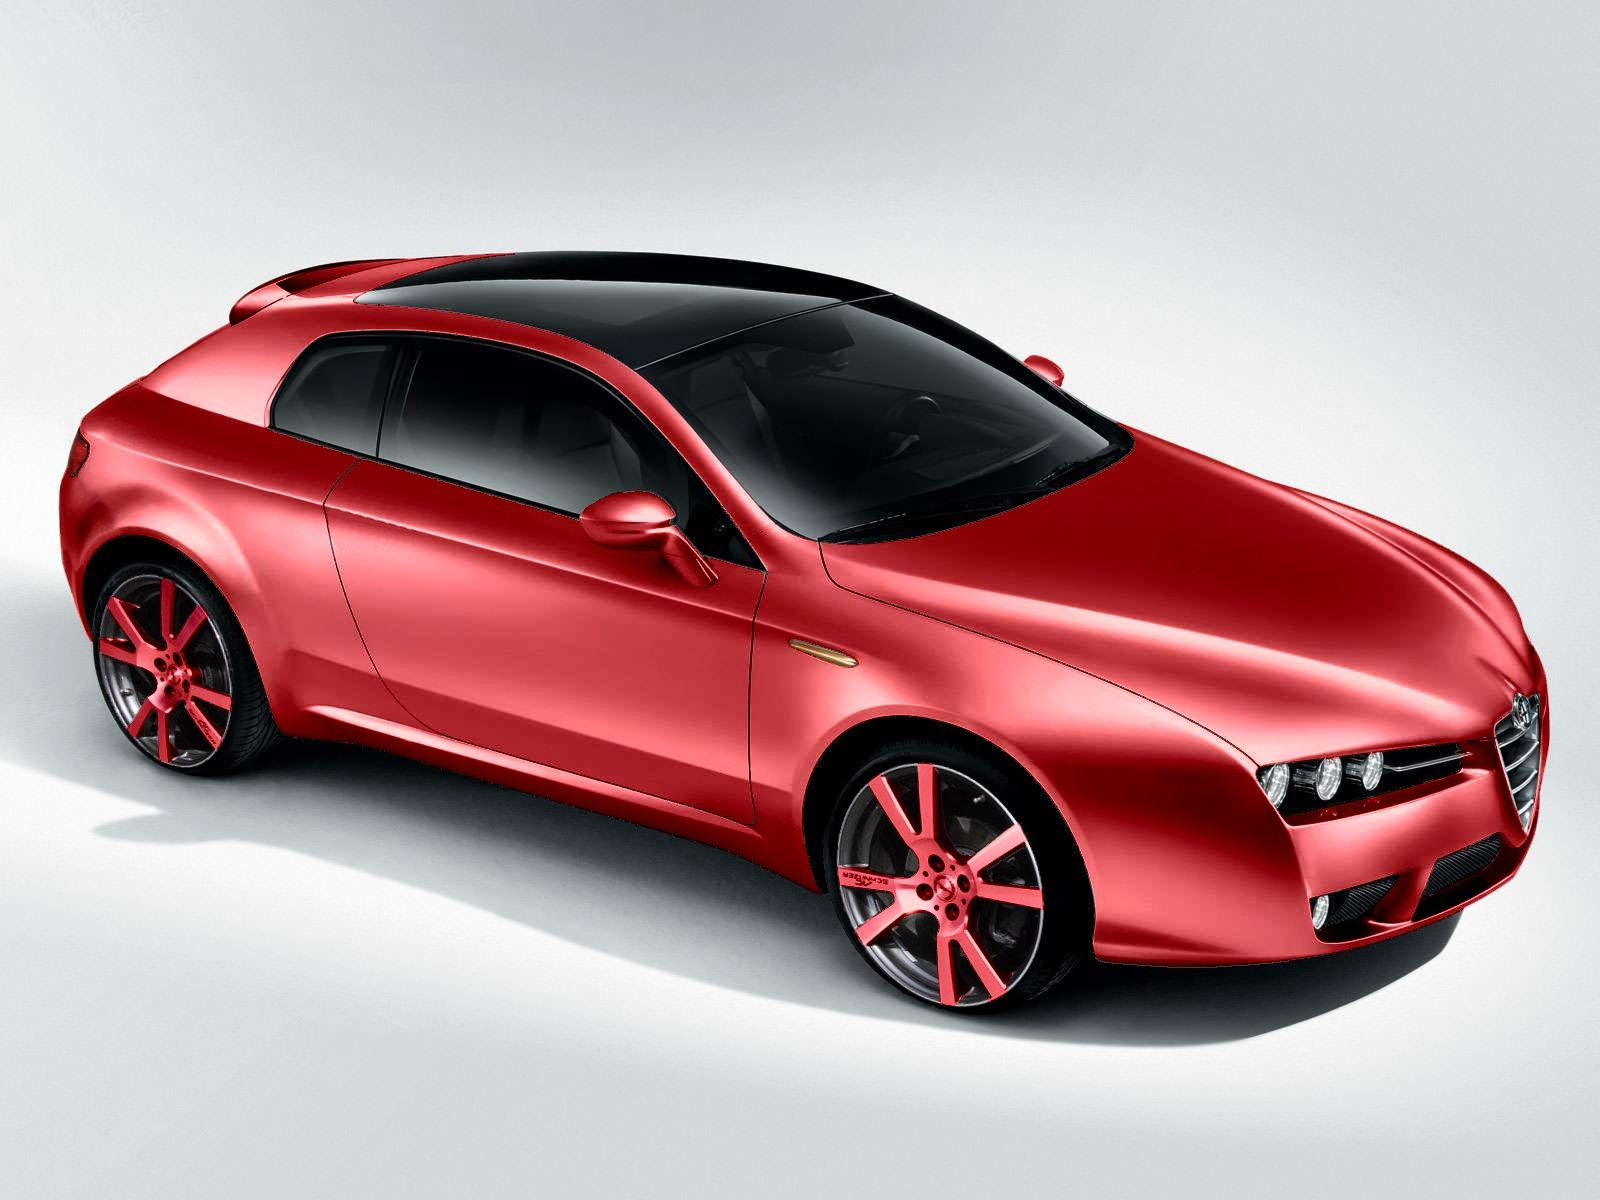 image for alfa romeo brera tuning front hd wallpaper | alfa romeo